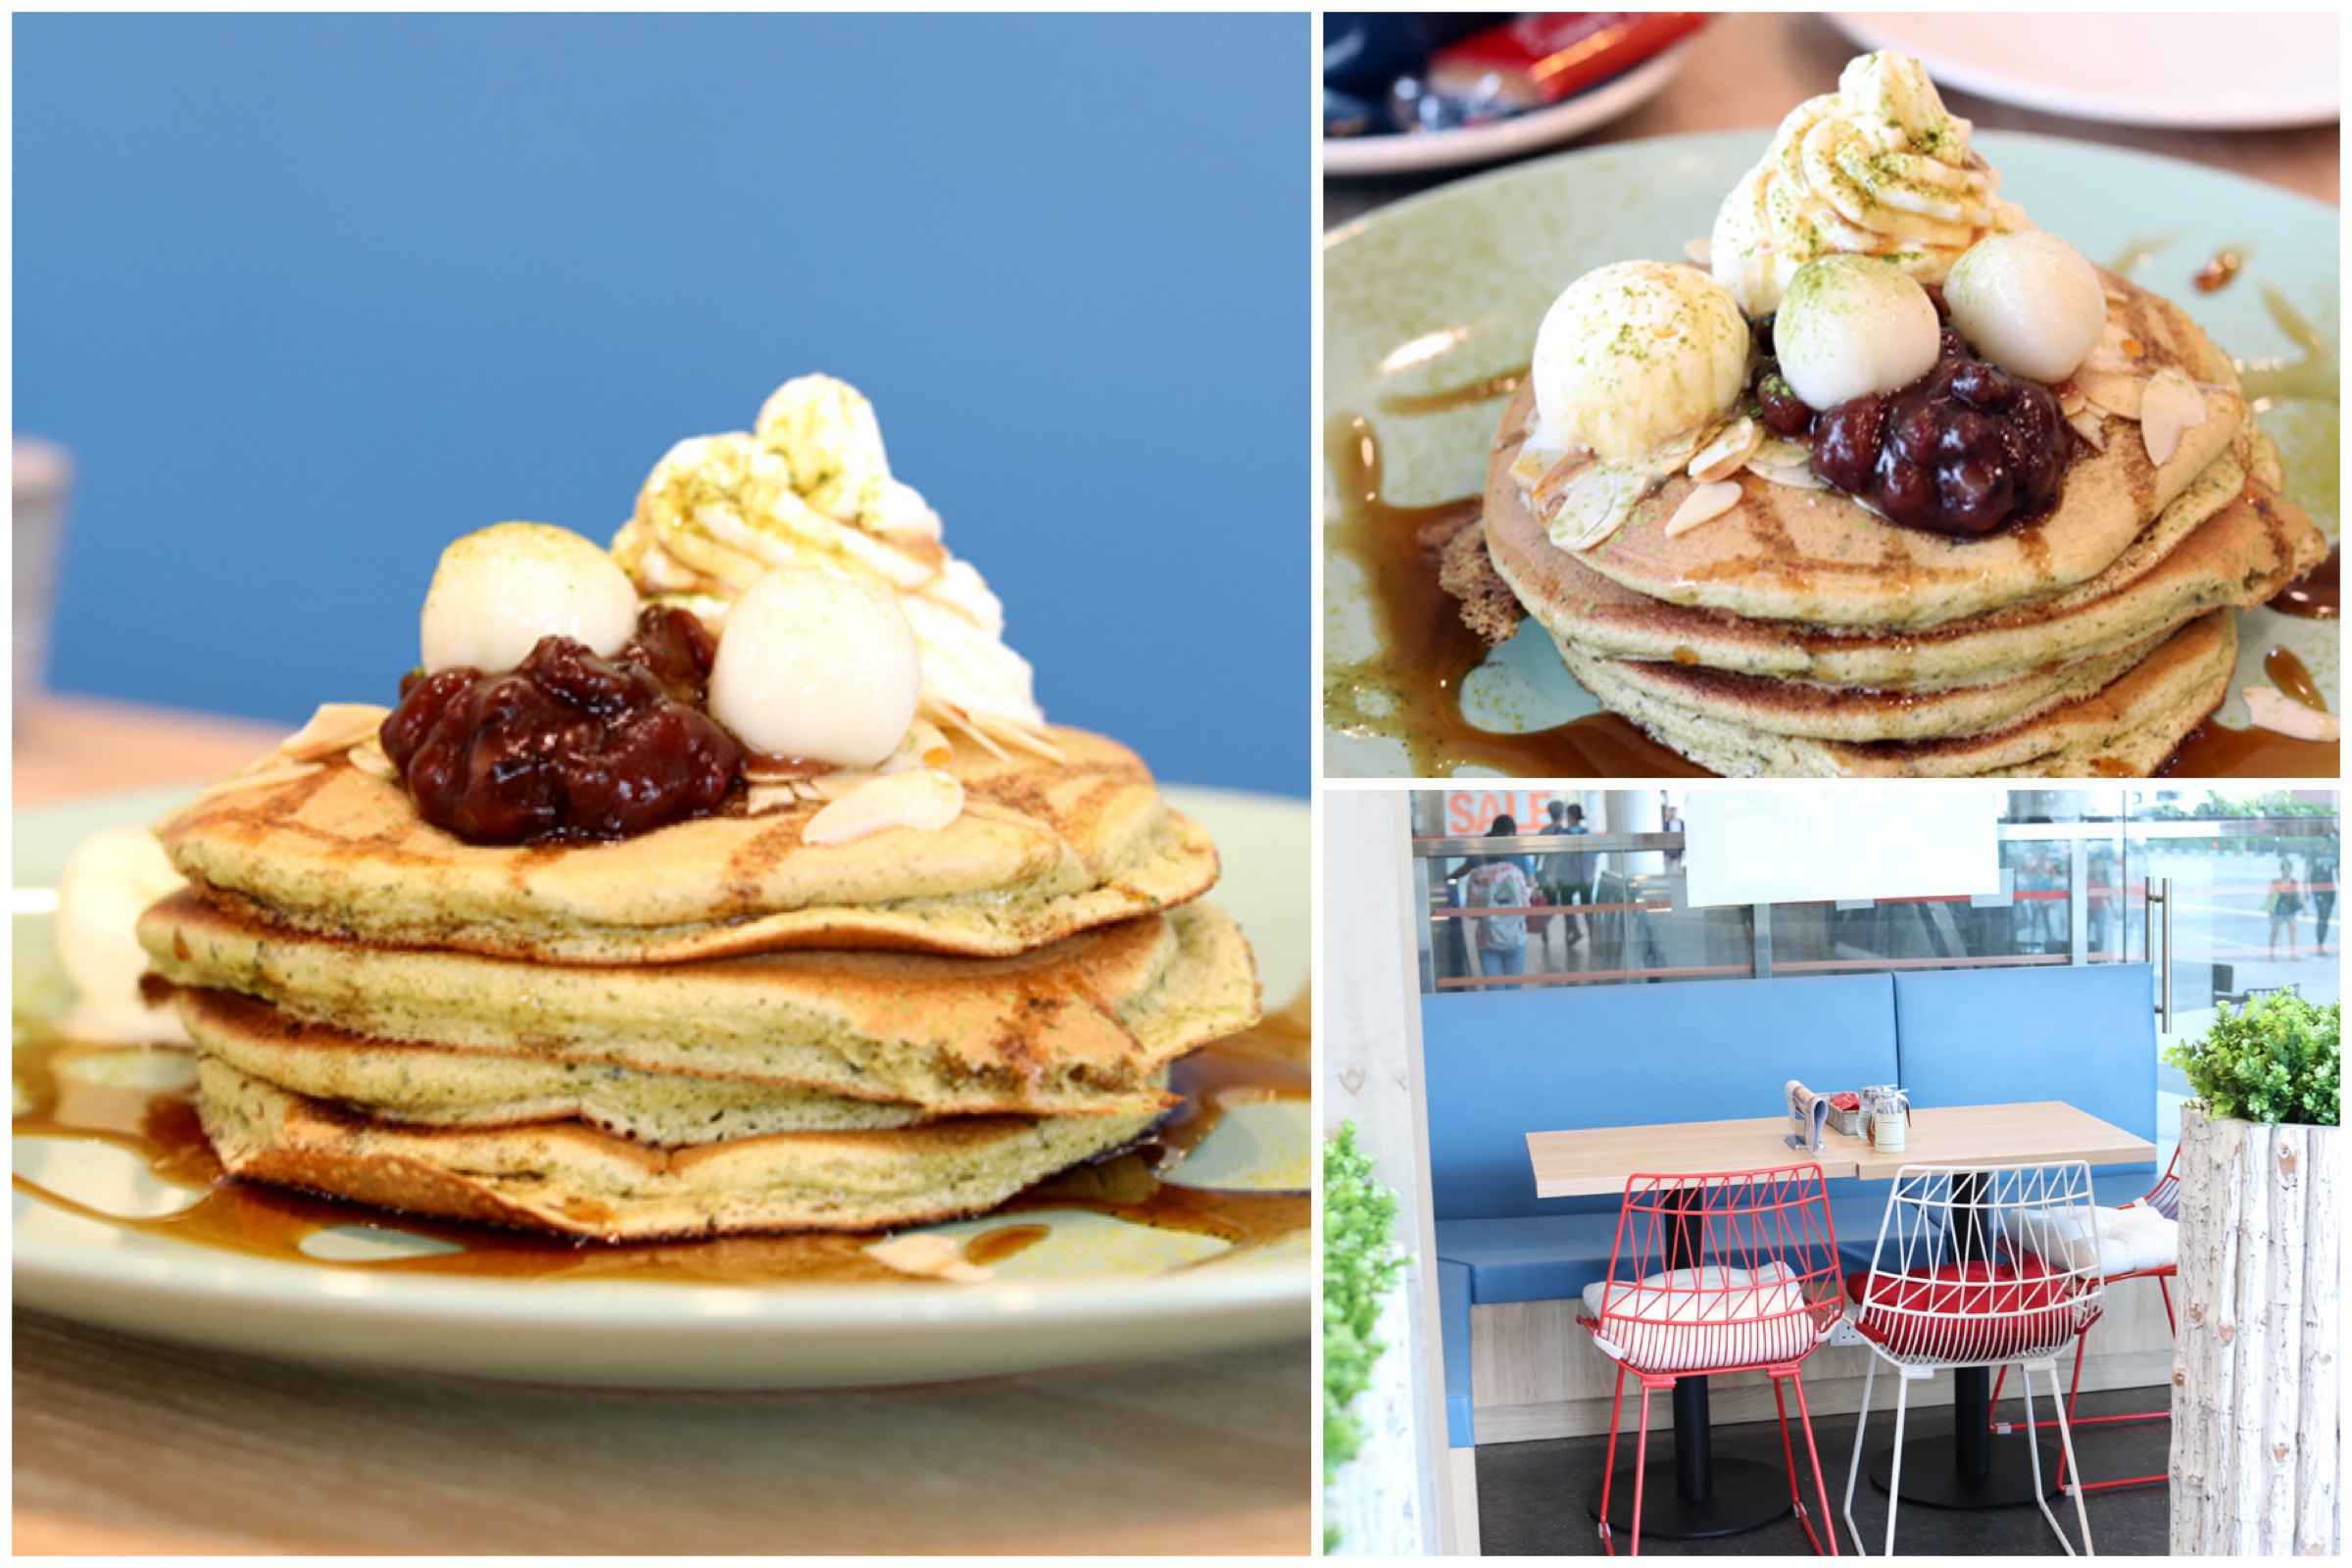 Belle-Ville - Popular Japanese Pancake Cafe From Osaka Opens At Bugis Junction